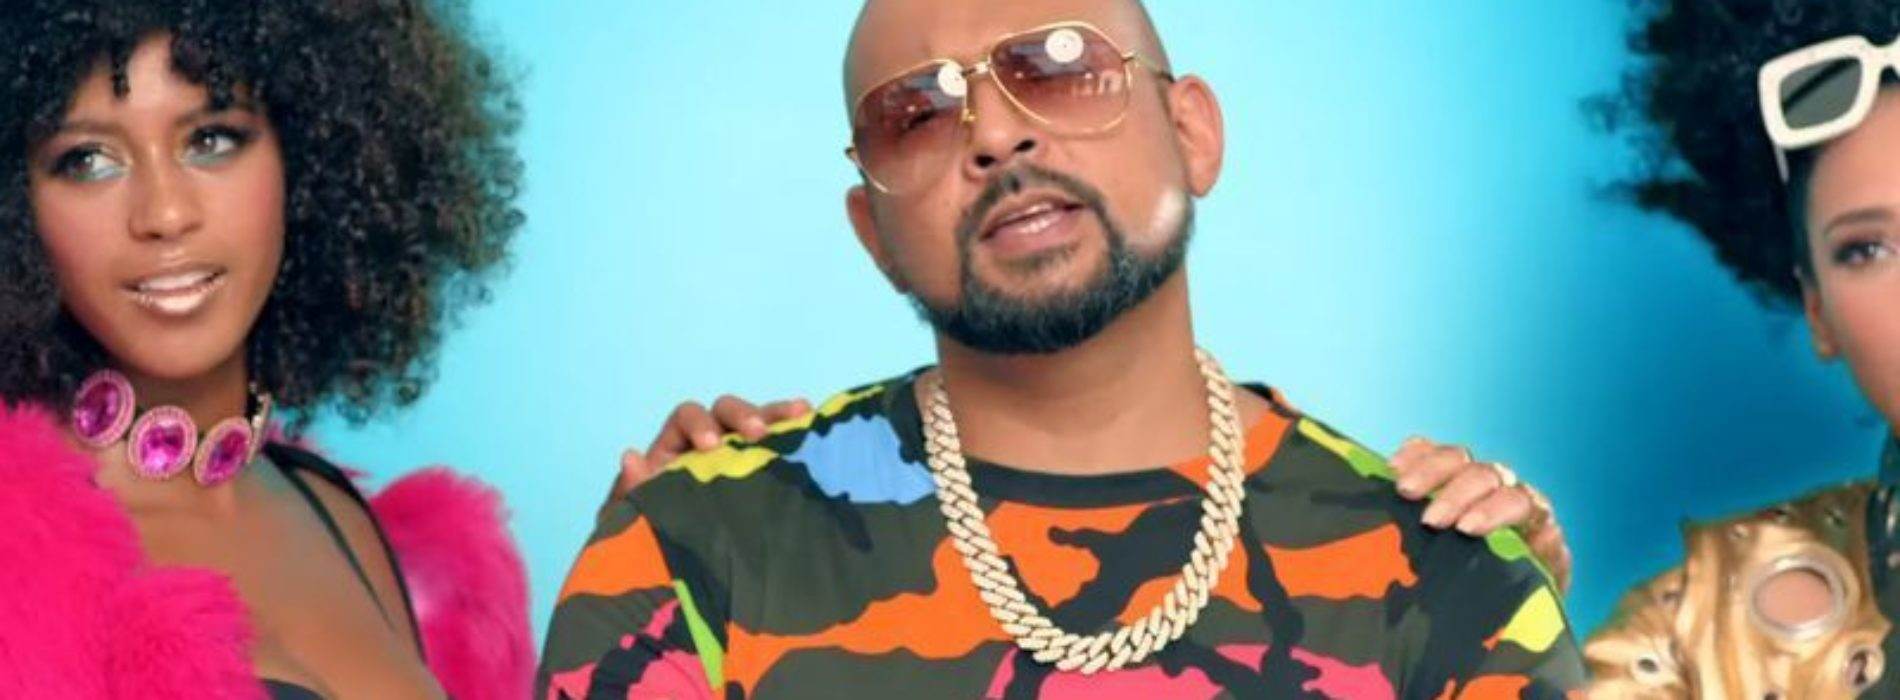 Sean Paul, Squash – Life We Living / Sean Paul – When It Comes To You (Official Video) – Septembre 2019